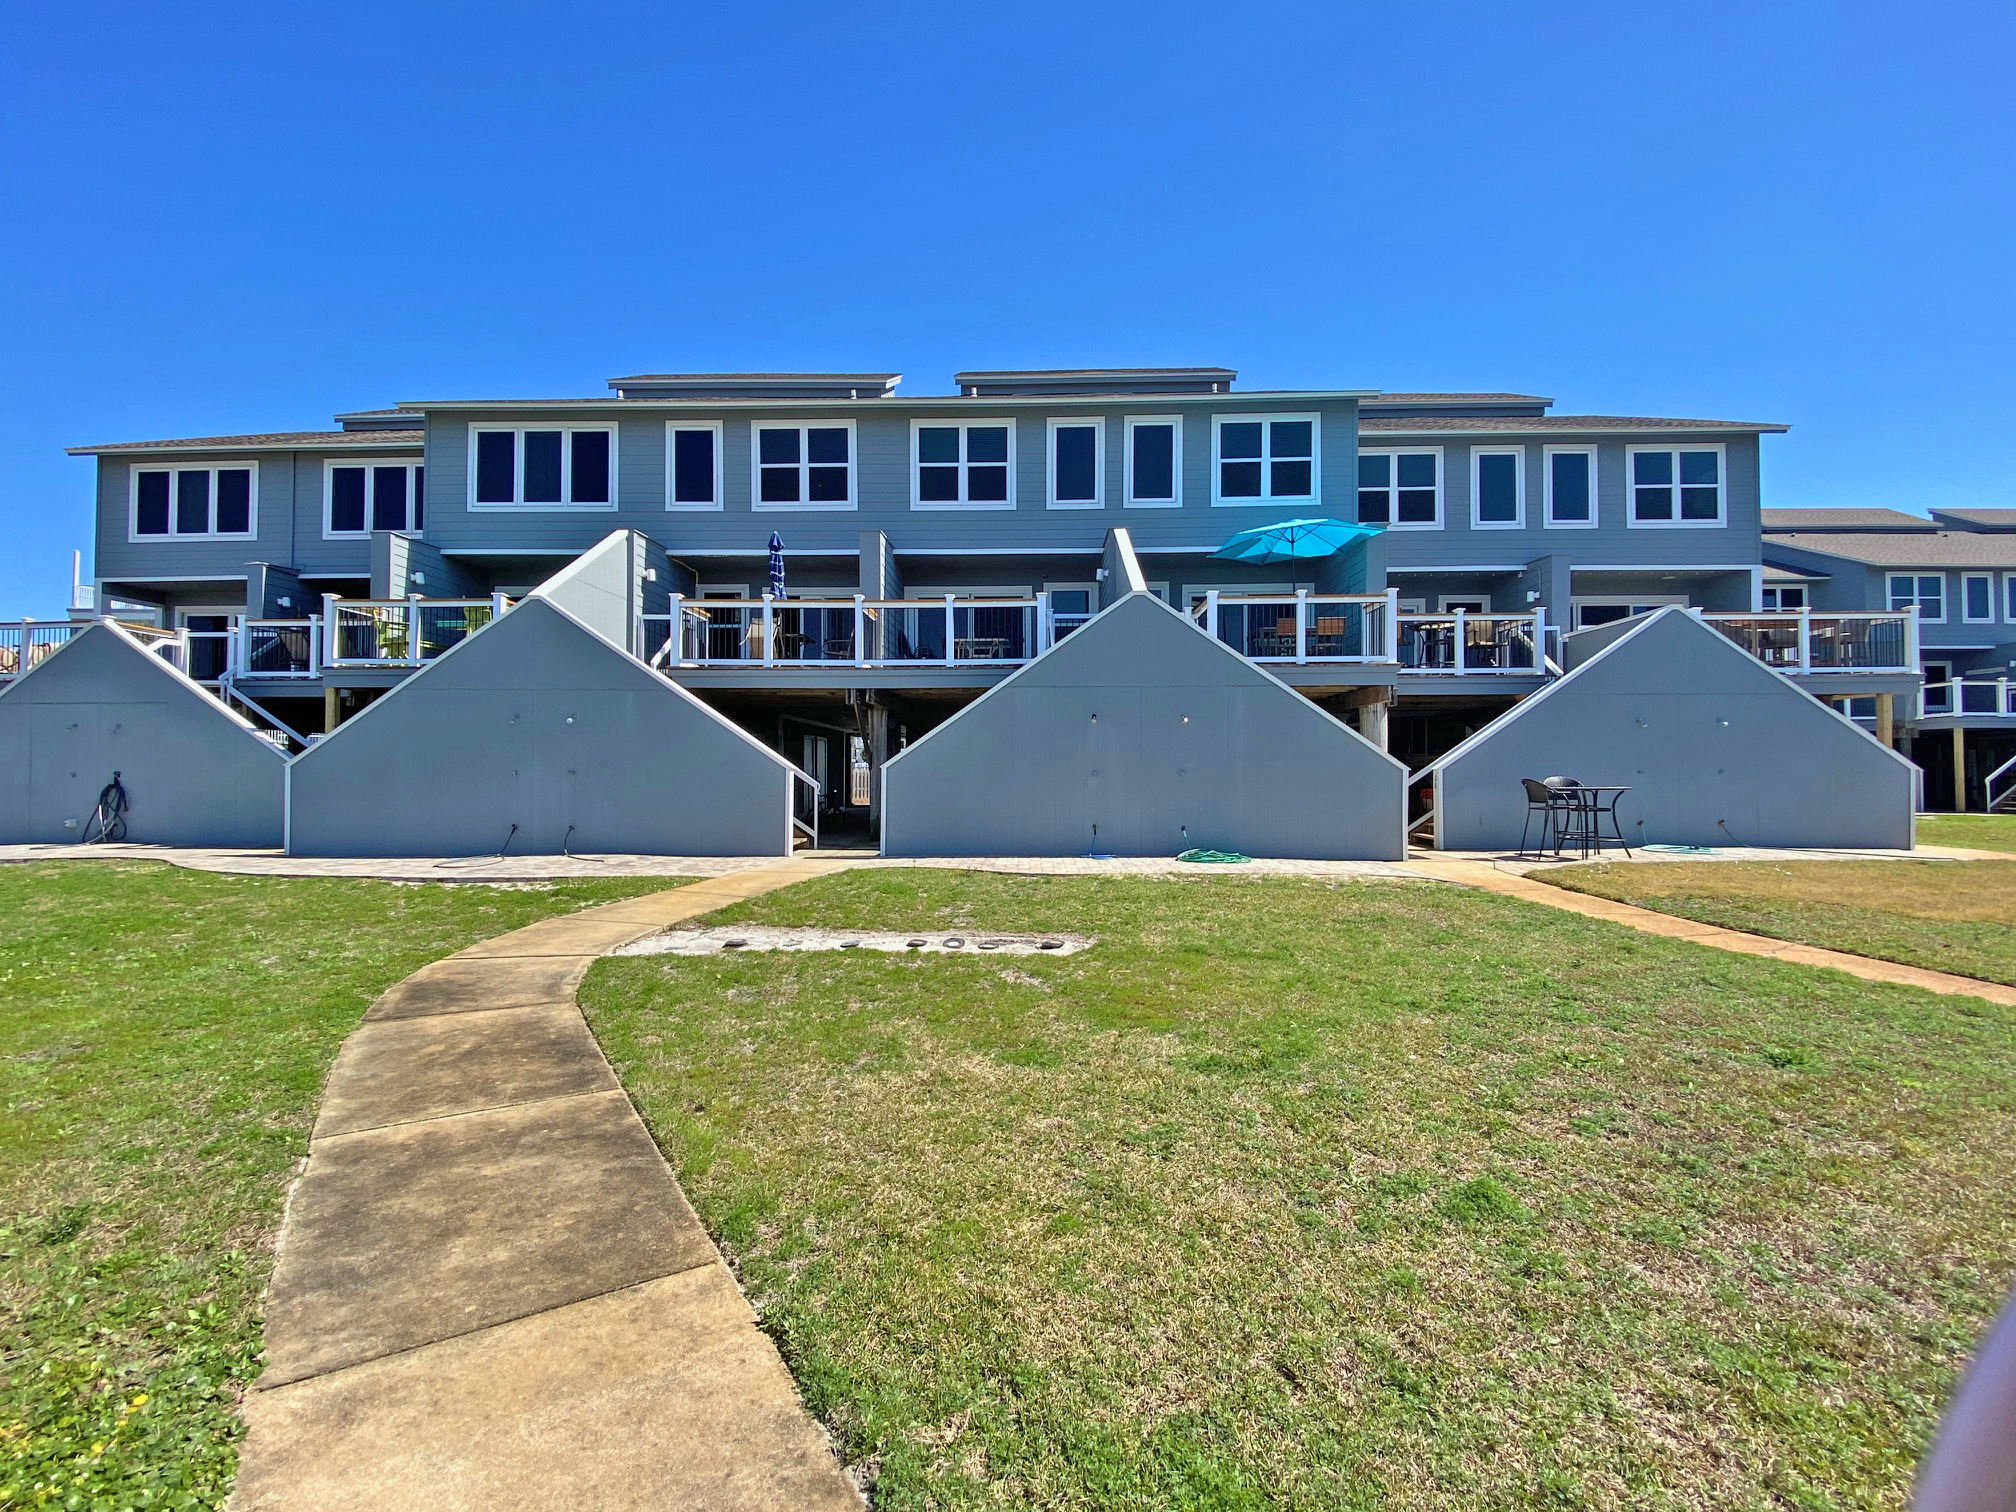 San De Luna #27 Townhouse rental in San DeLuna Pensacola Beach in Pensacola Beach Florida - #42